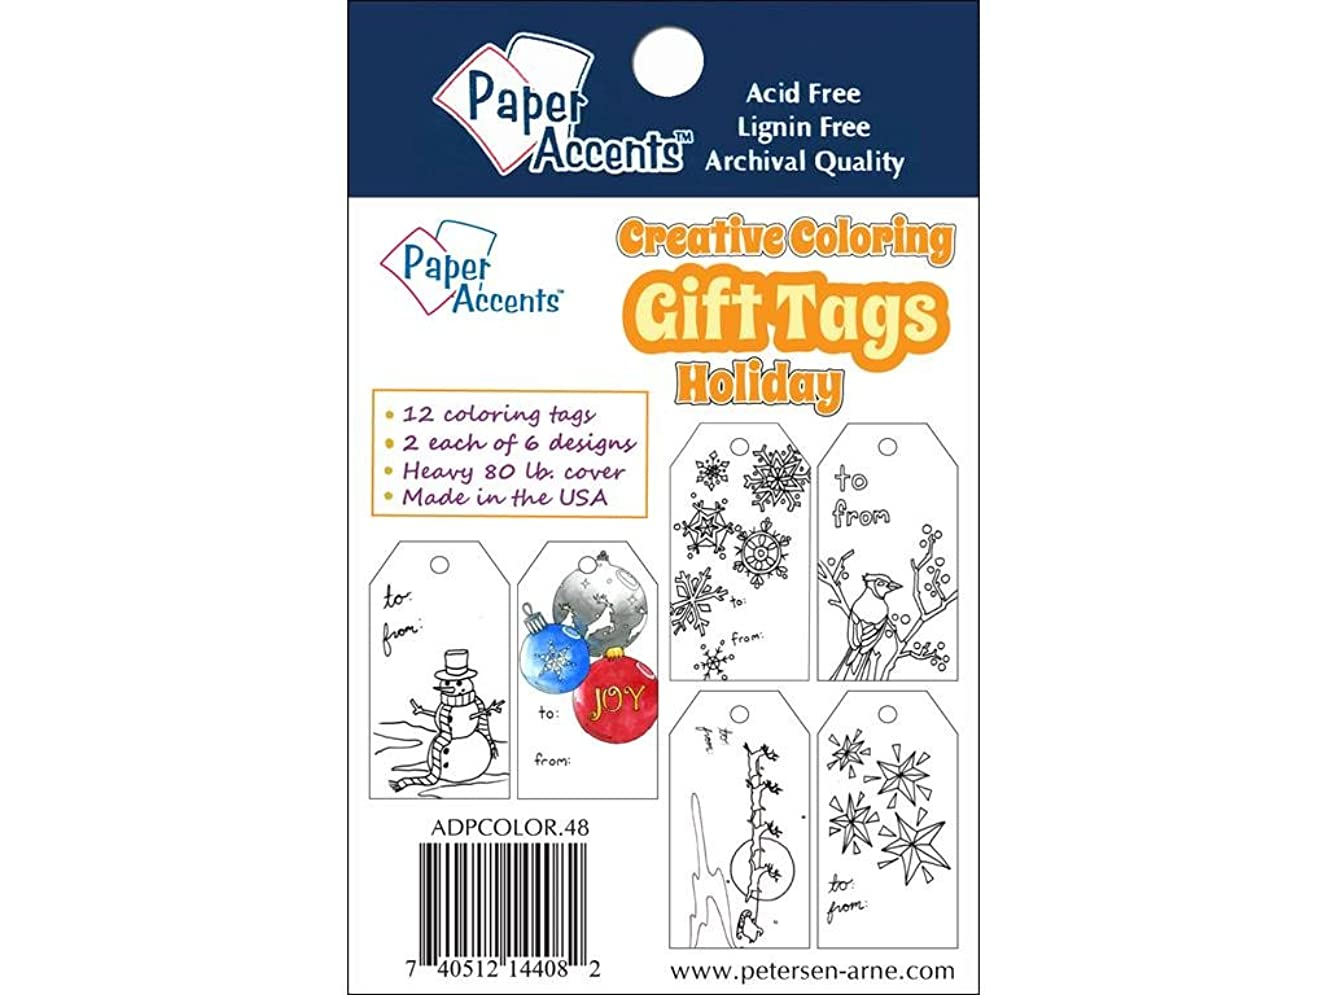 Accent Design Paper Accents Coloring Tags 2x3.75 Holiday ColoringTagsHoliday